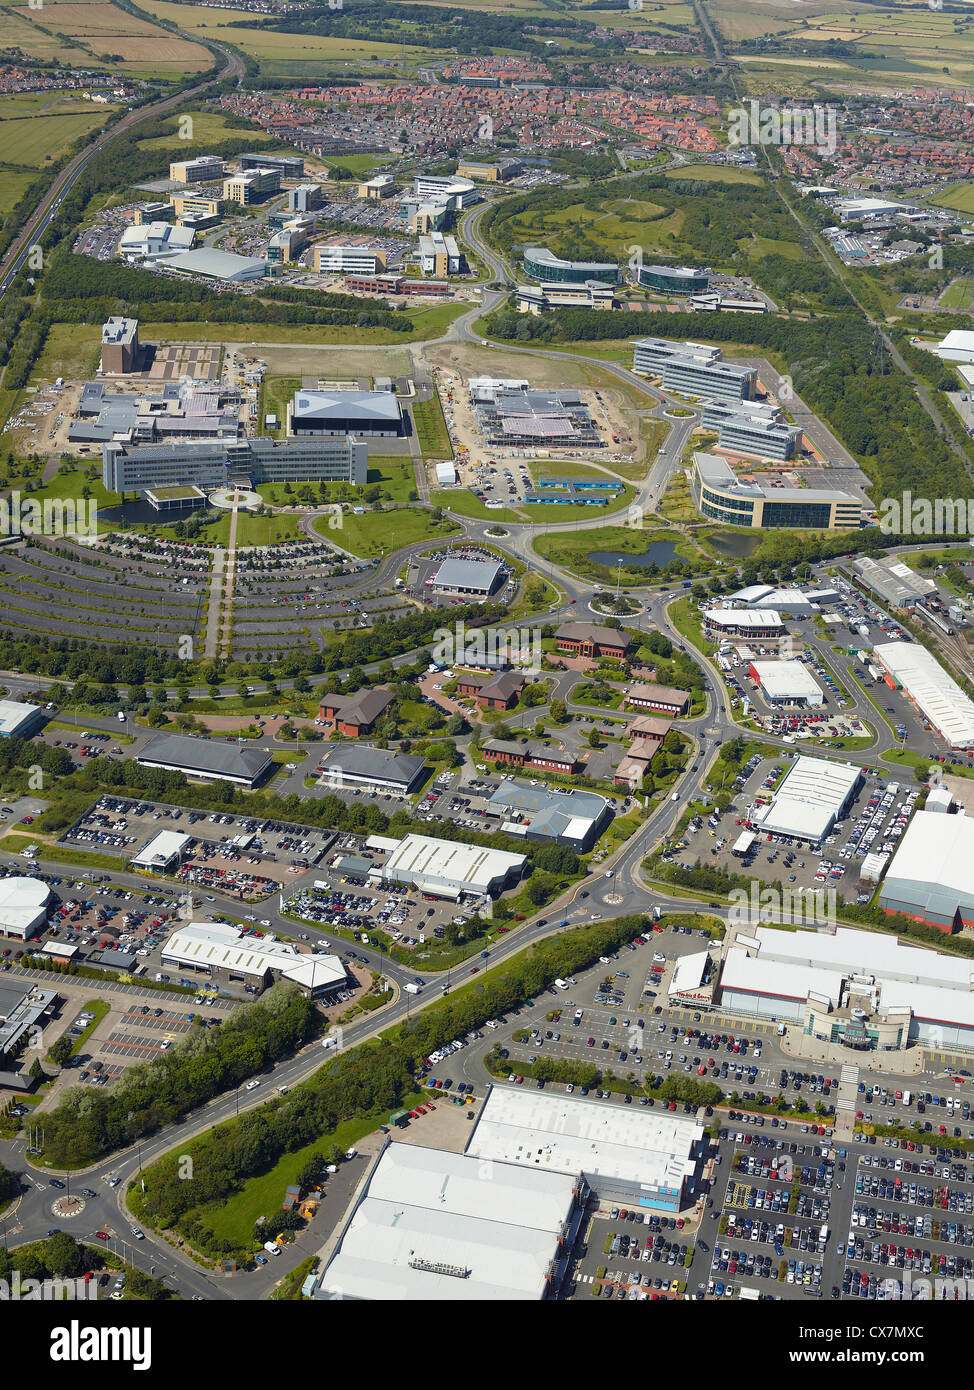 Silverlink business area, Newcastle upon Tyne, North East England, UK, Siemens site visible in the background Stock Photo